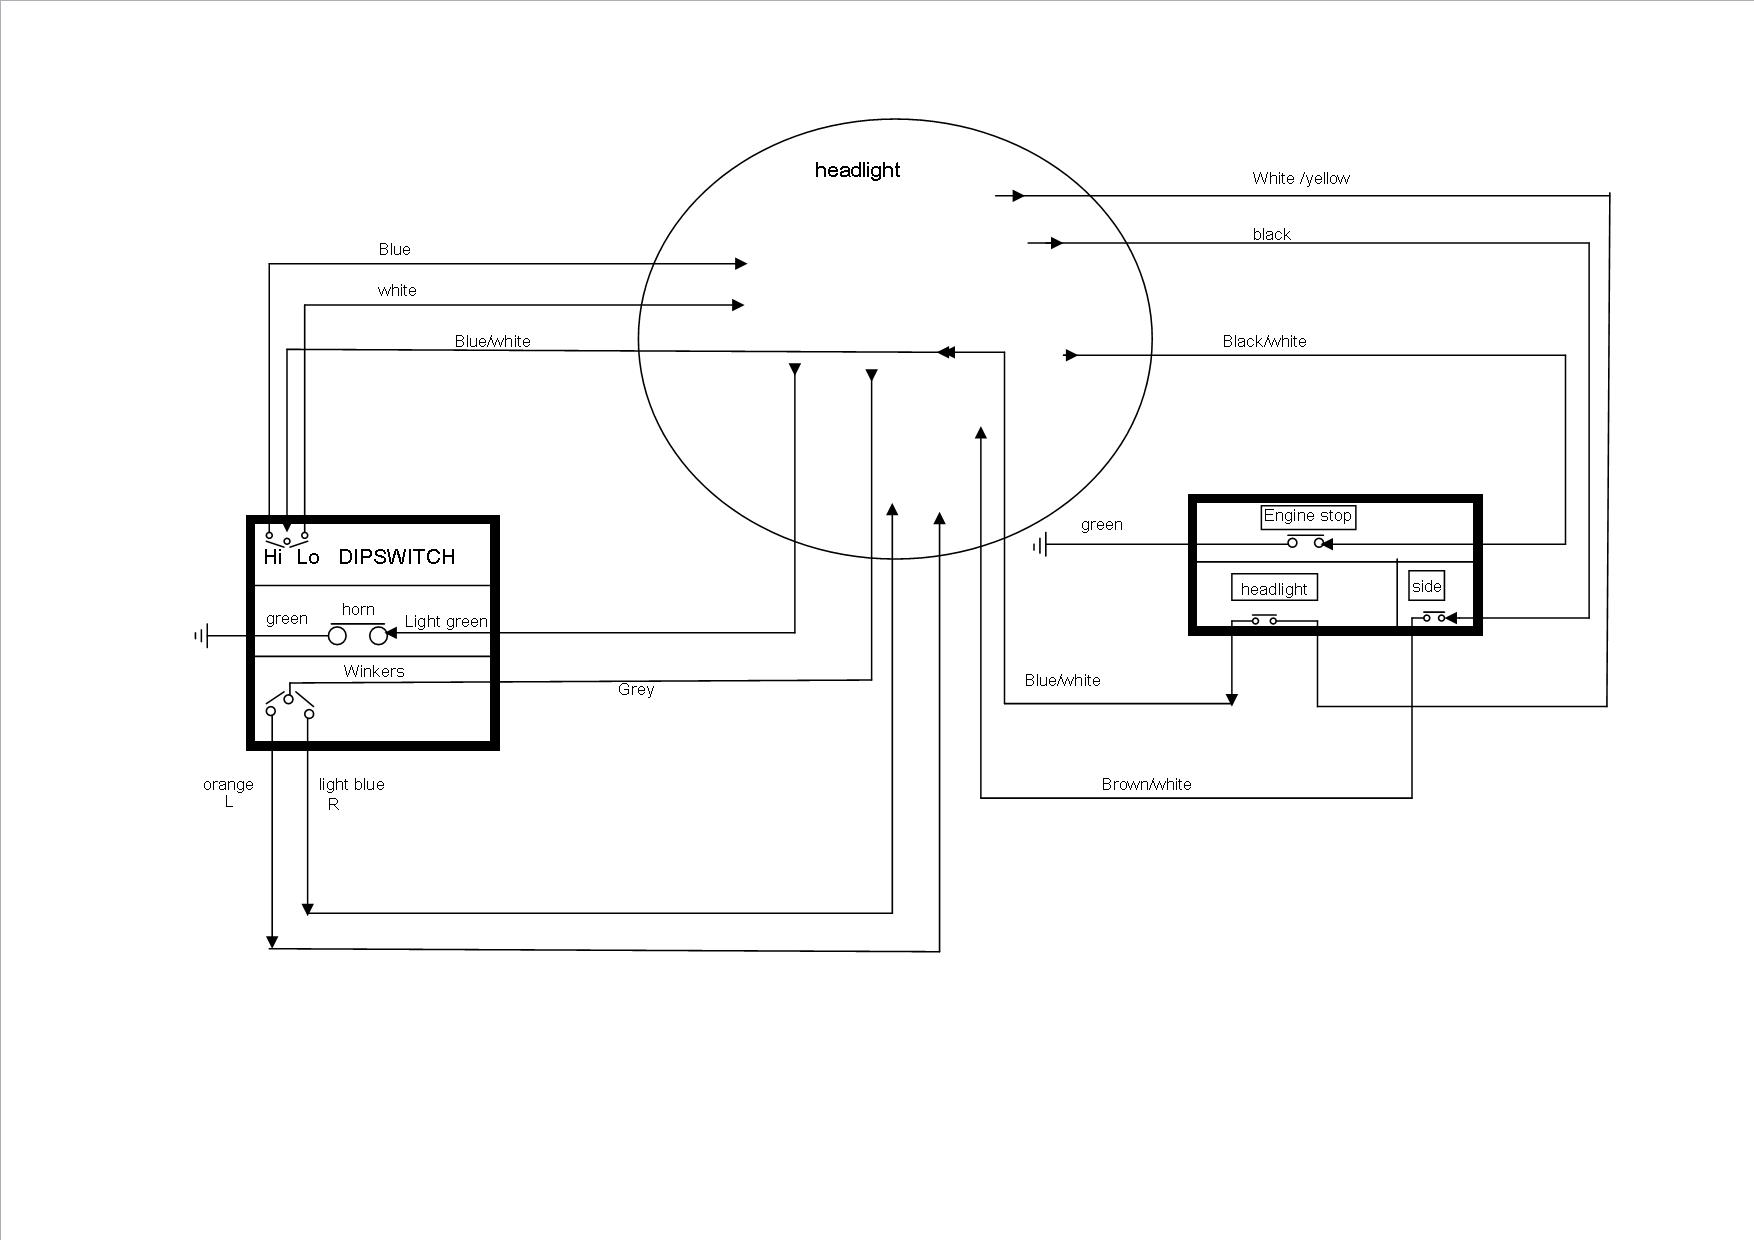 xl250 wiring diagram thermostat wiring to wall ptac